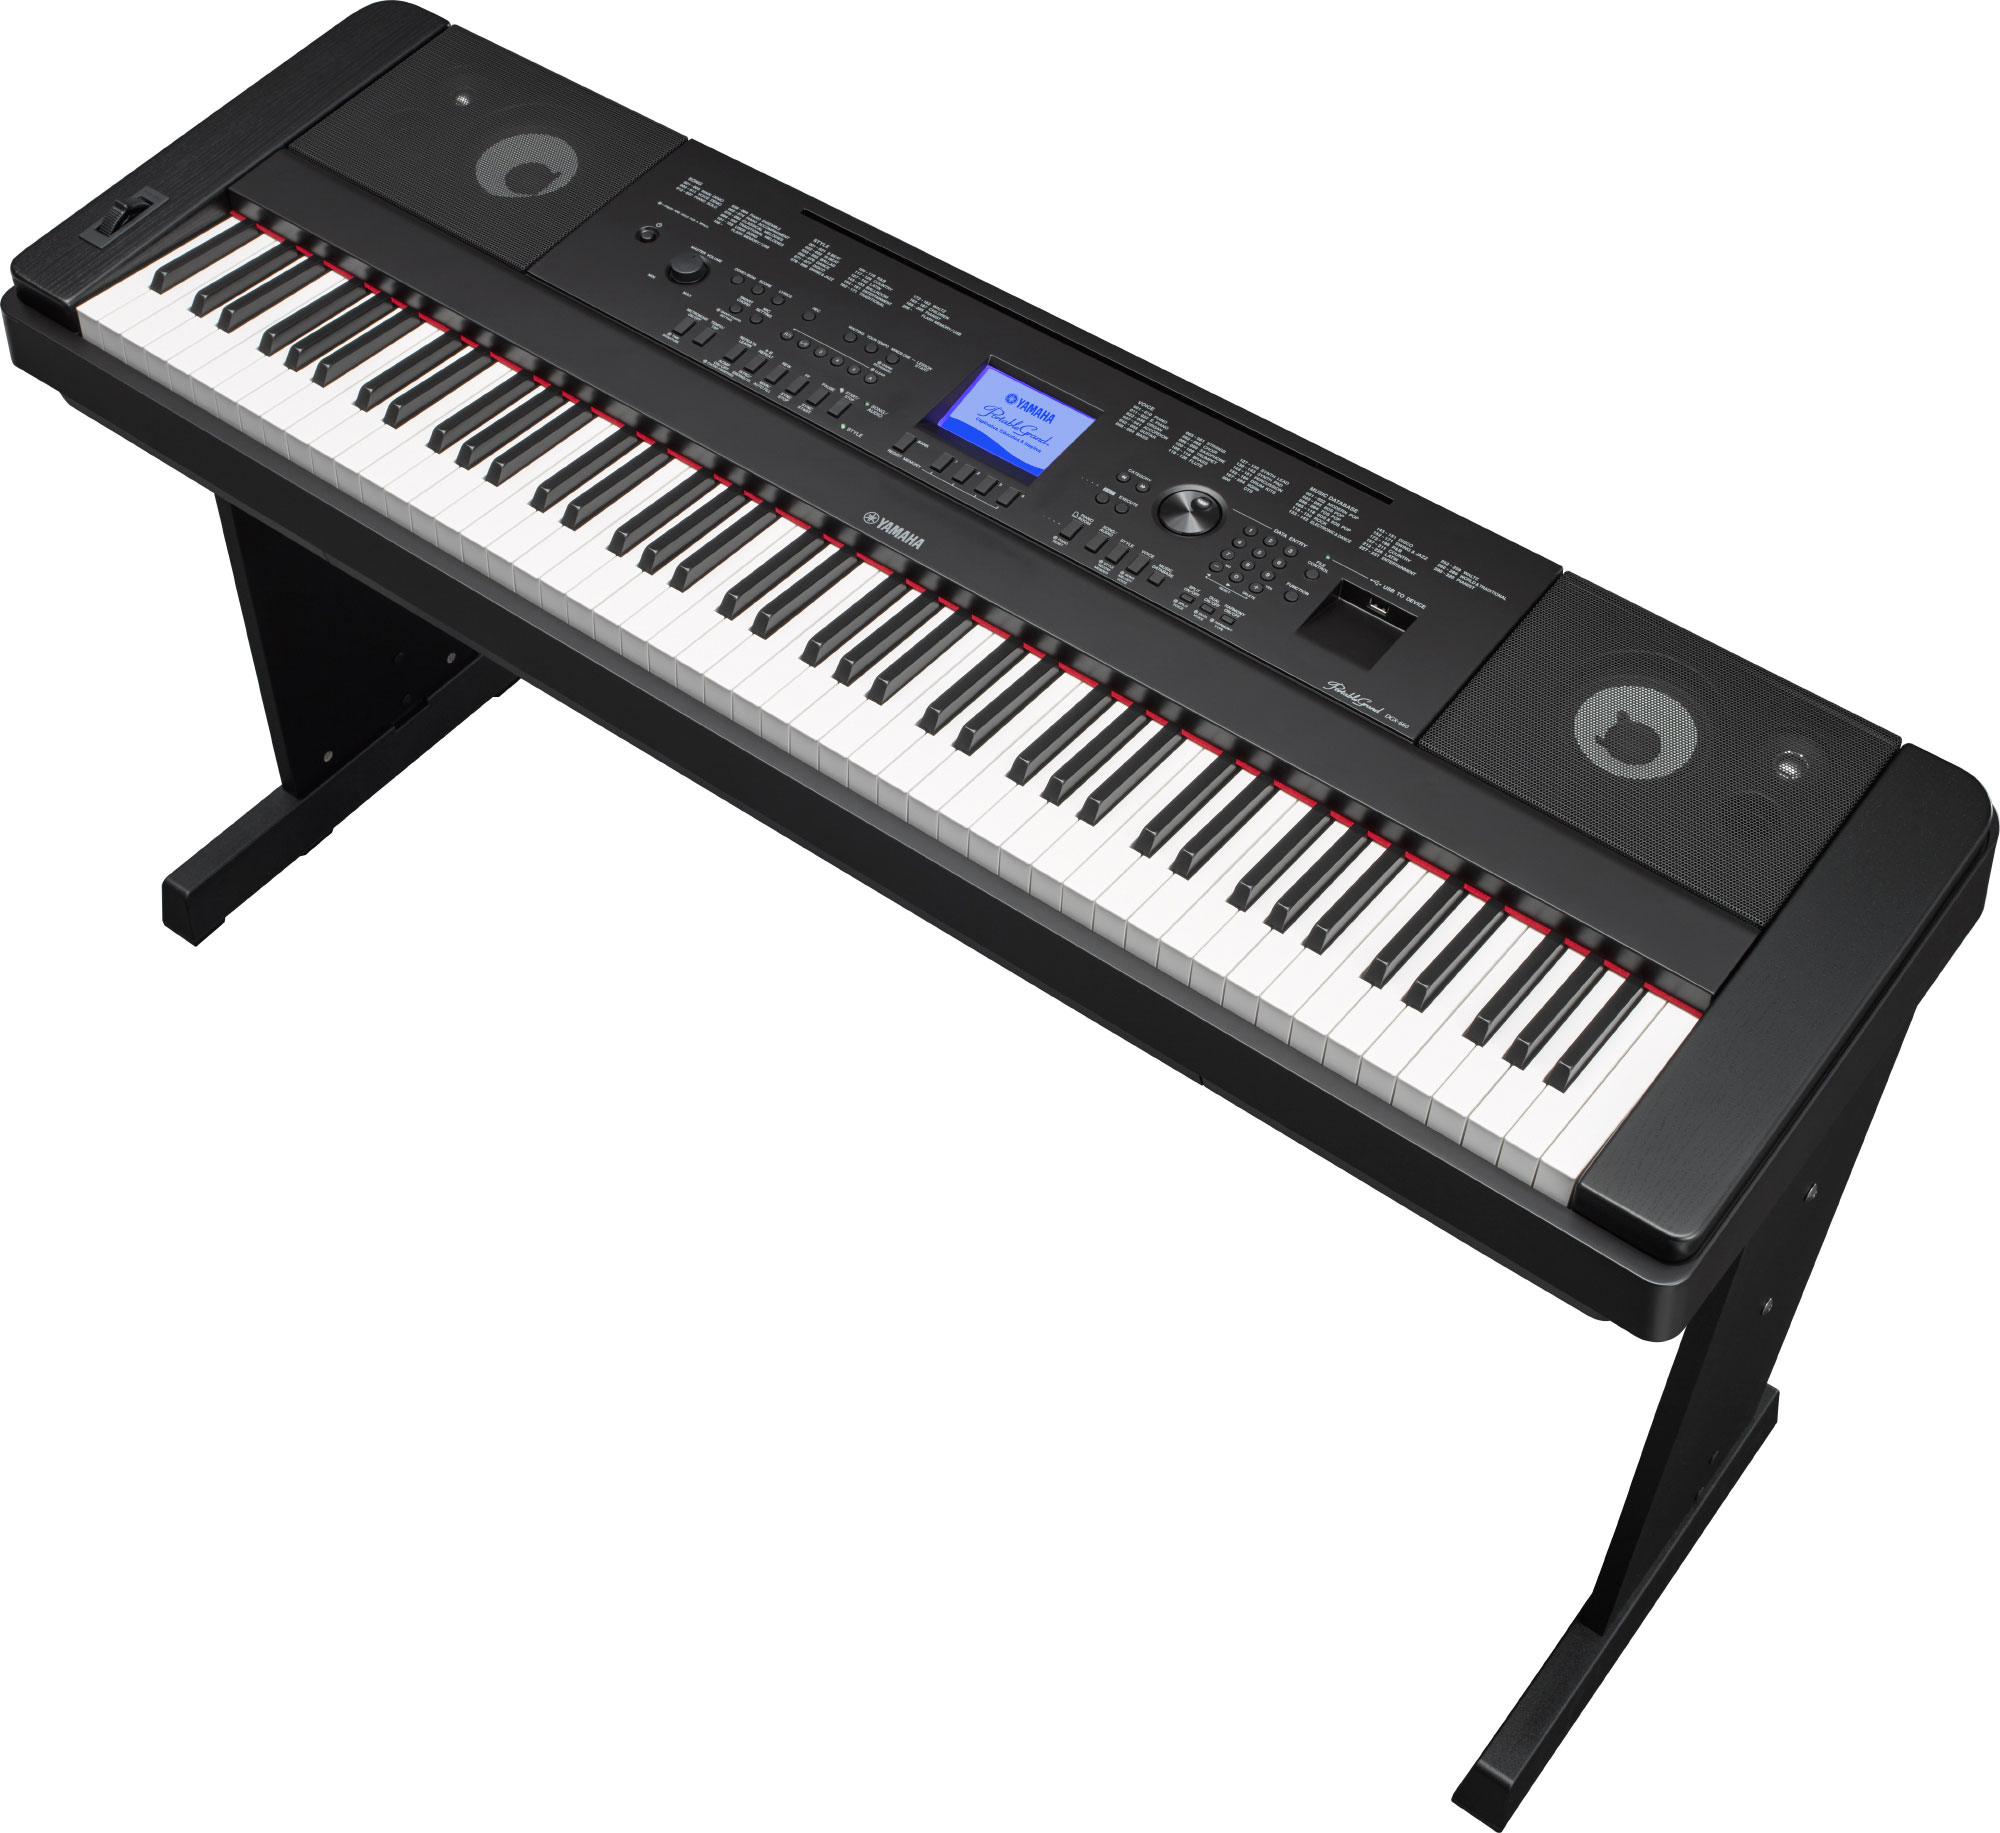 Dgx 660 absolute pianoabsolute piano for Yamaha piano com